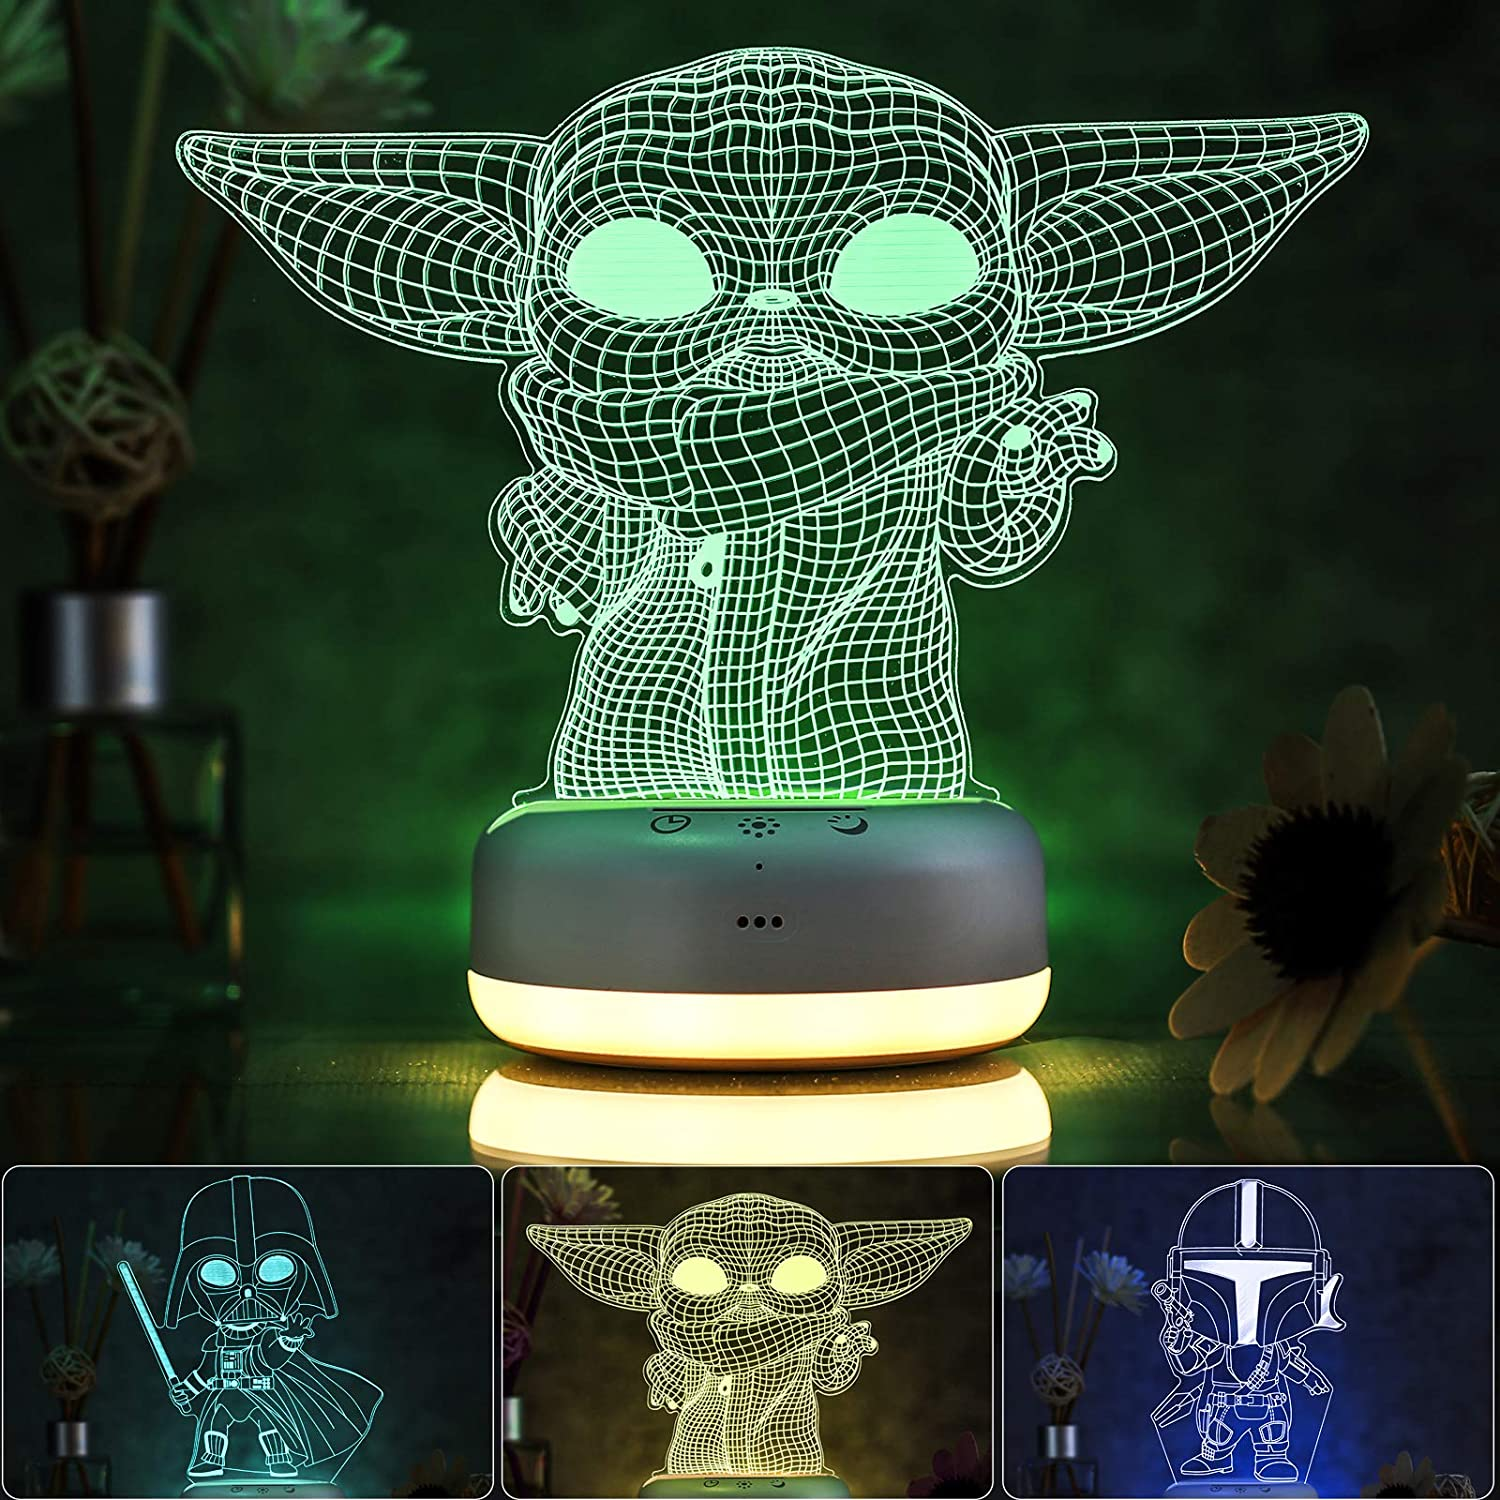 3D Star Wars Night Light for Kids - 3 Patterns and 16 Color Change Decor Lamp - Warm White Light for Sleep - Star Wars Toys for Kids - Birthday & Christmas Gifts for Boys Girls and Star Wars Fans